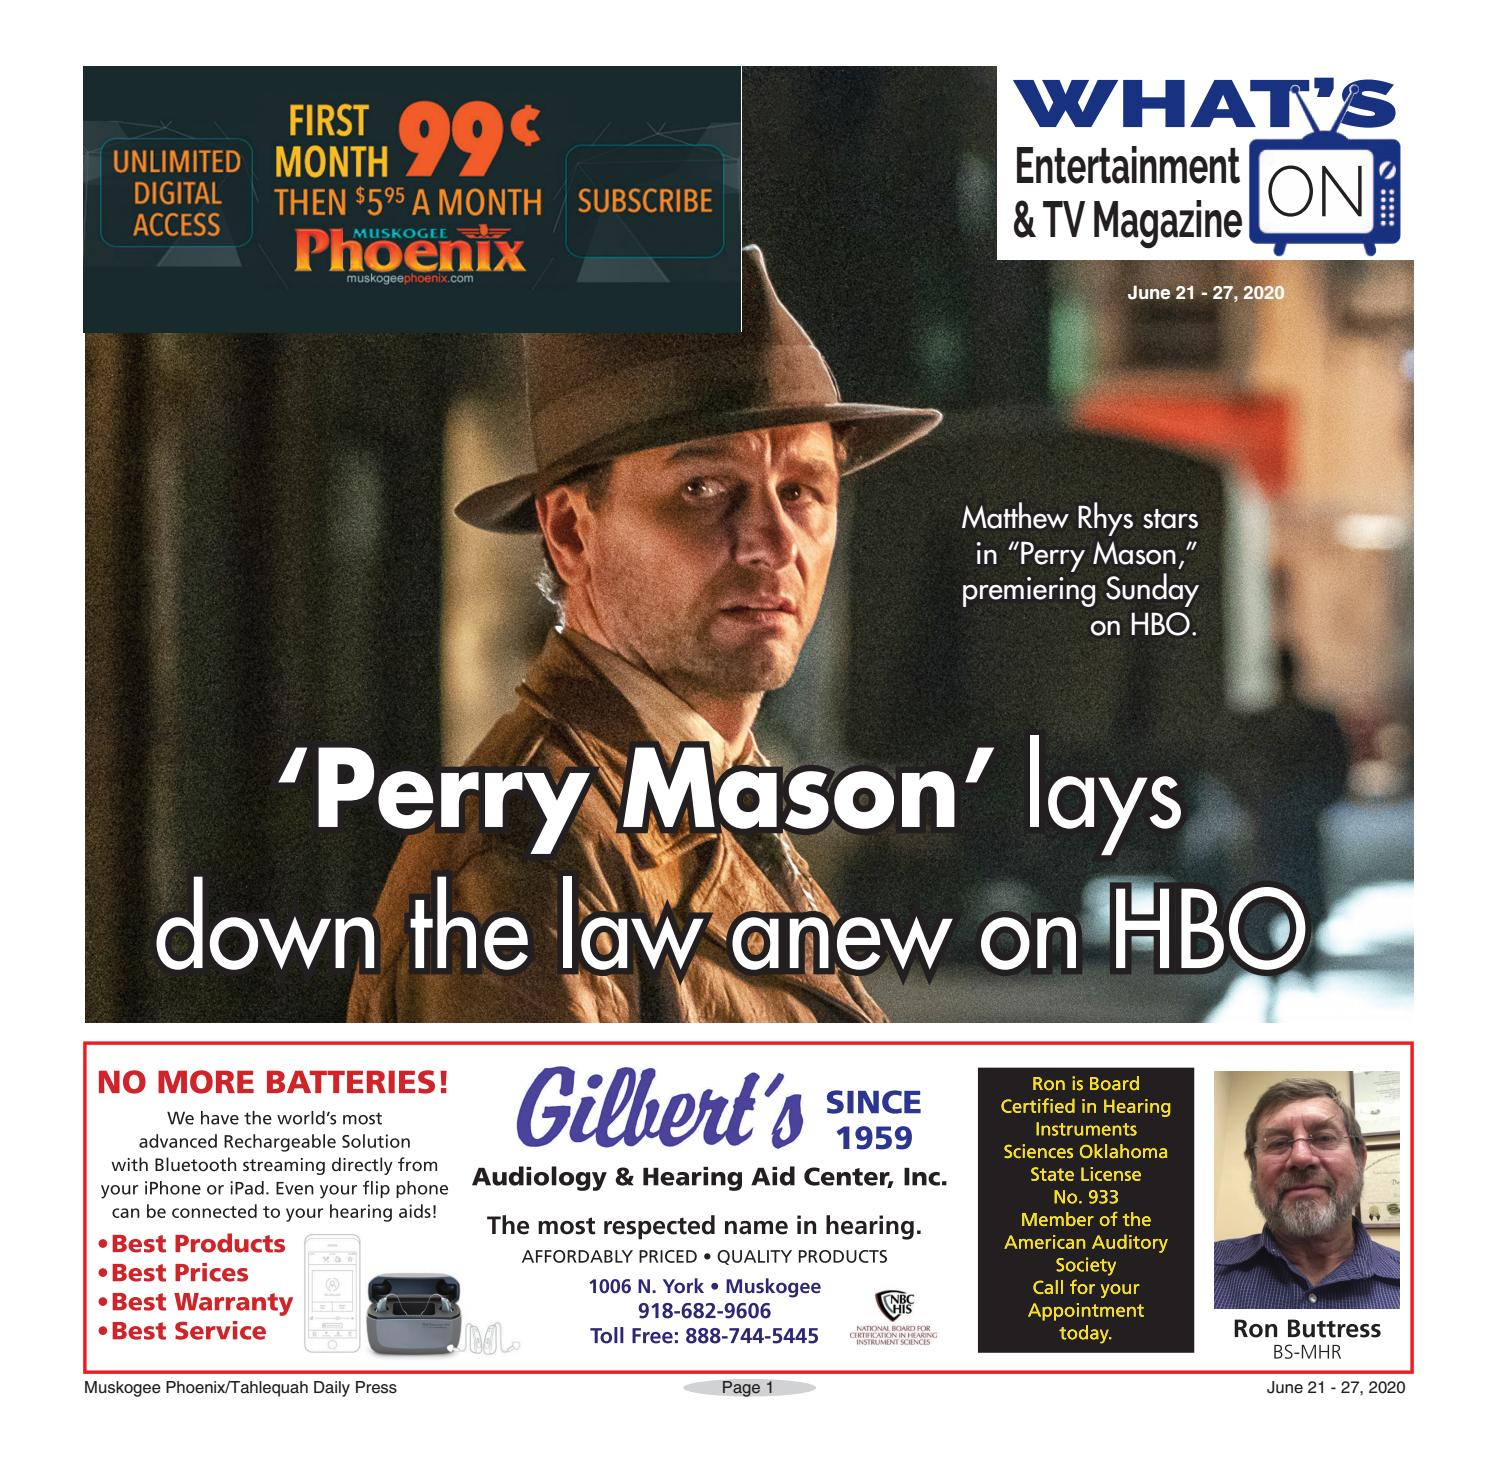 What's on TV 06.21.20 by Muskogee Phoenix - issuu